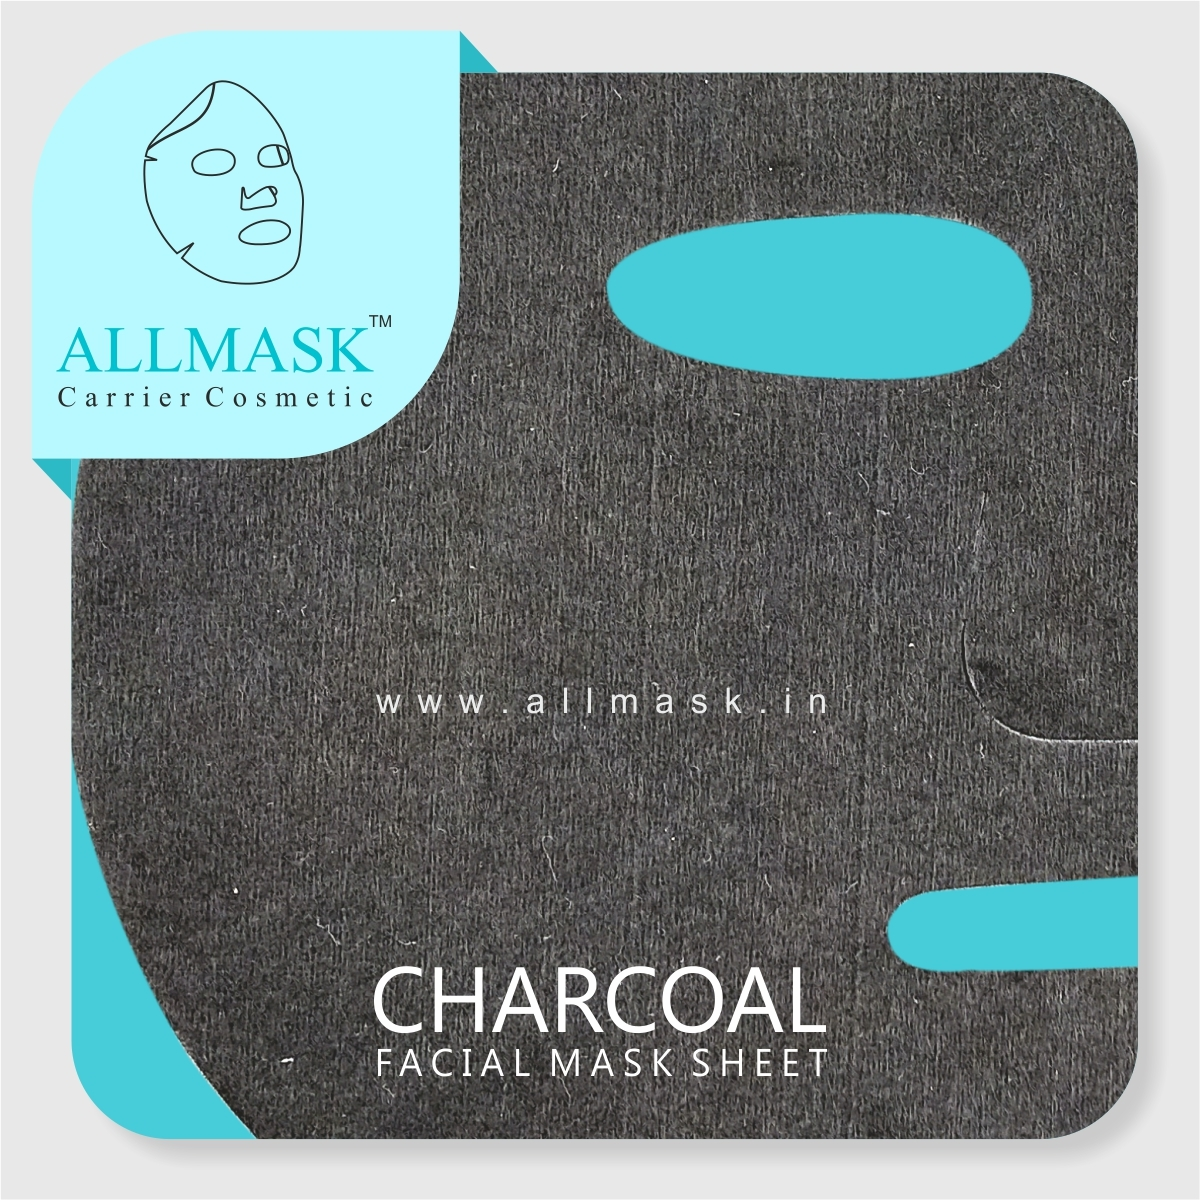 Charcoal Facial Mask Sheet - 100% Original - ODM/OEM Customization Available